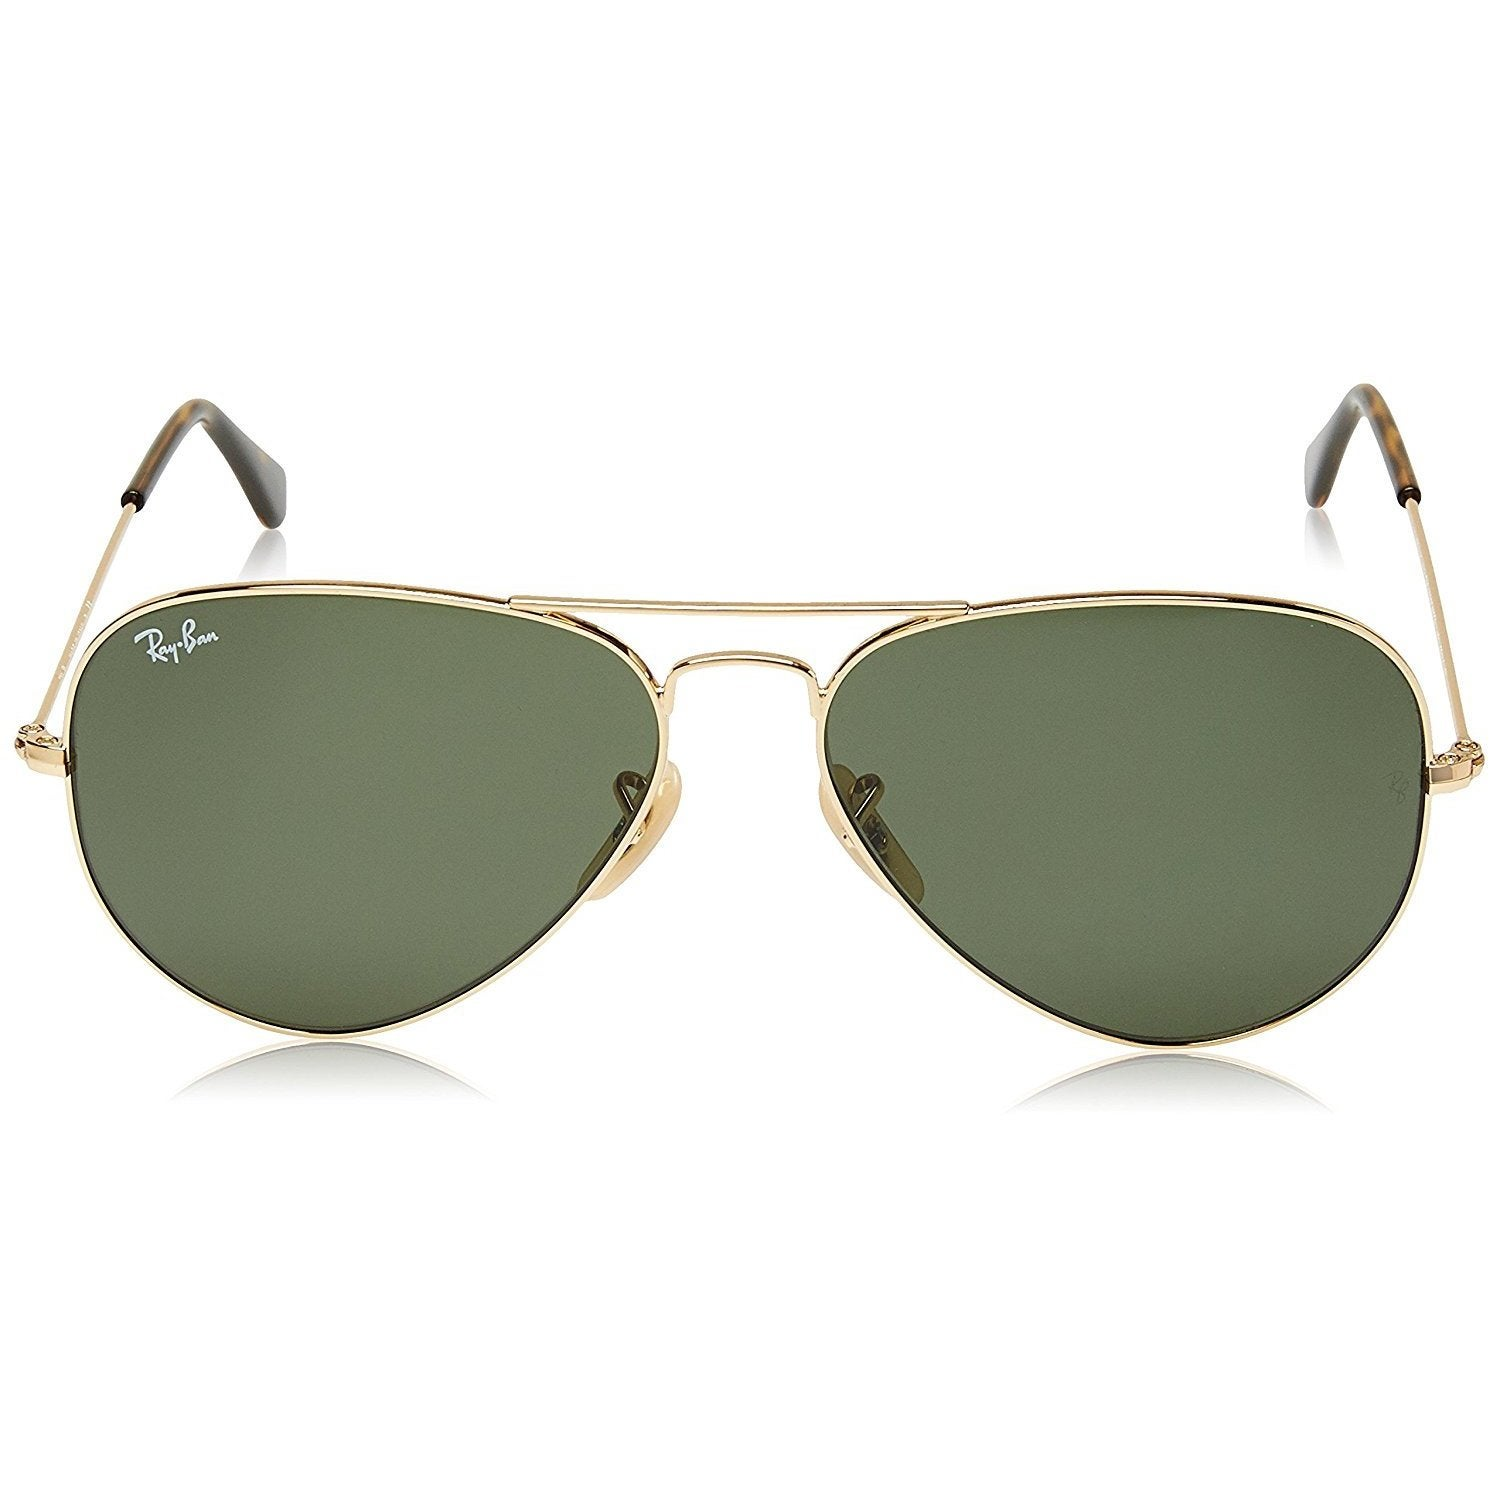 6fc697b9254 Shop Ray-Ban RB3025 181 La Havana Aviator Gold Frame Green Classic 58mm  Lens Sunglasses - Free Shipping Today - Overstock - 14277118